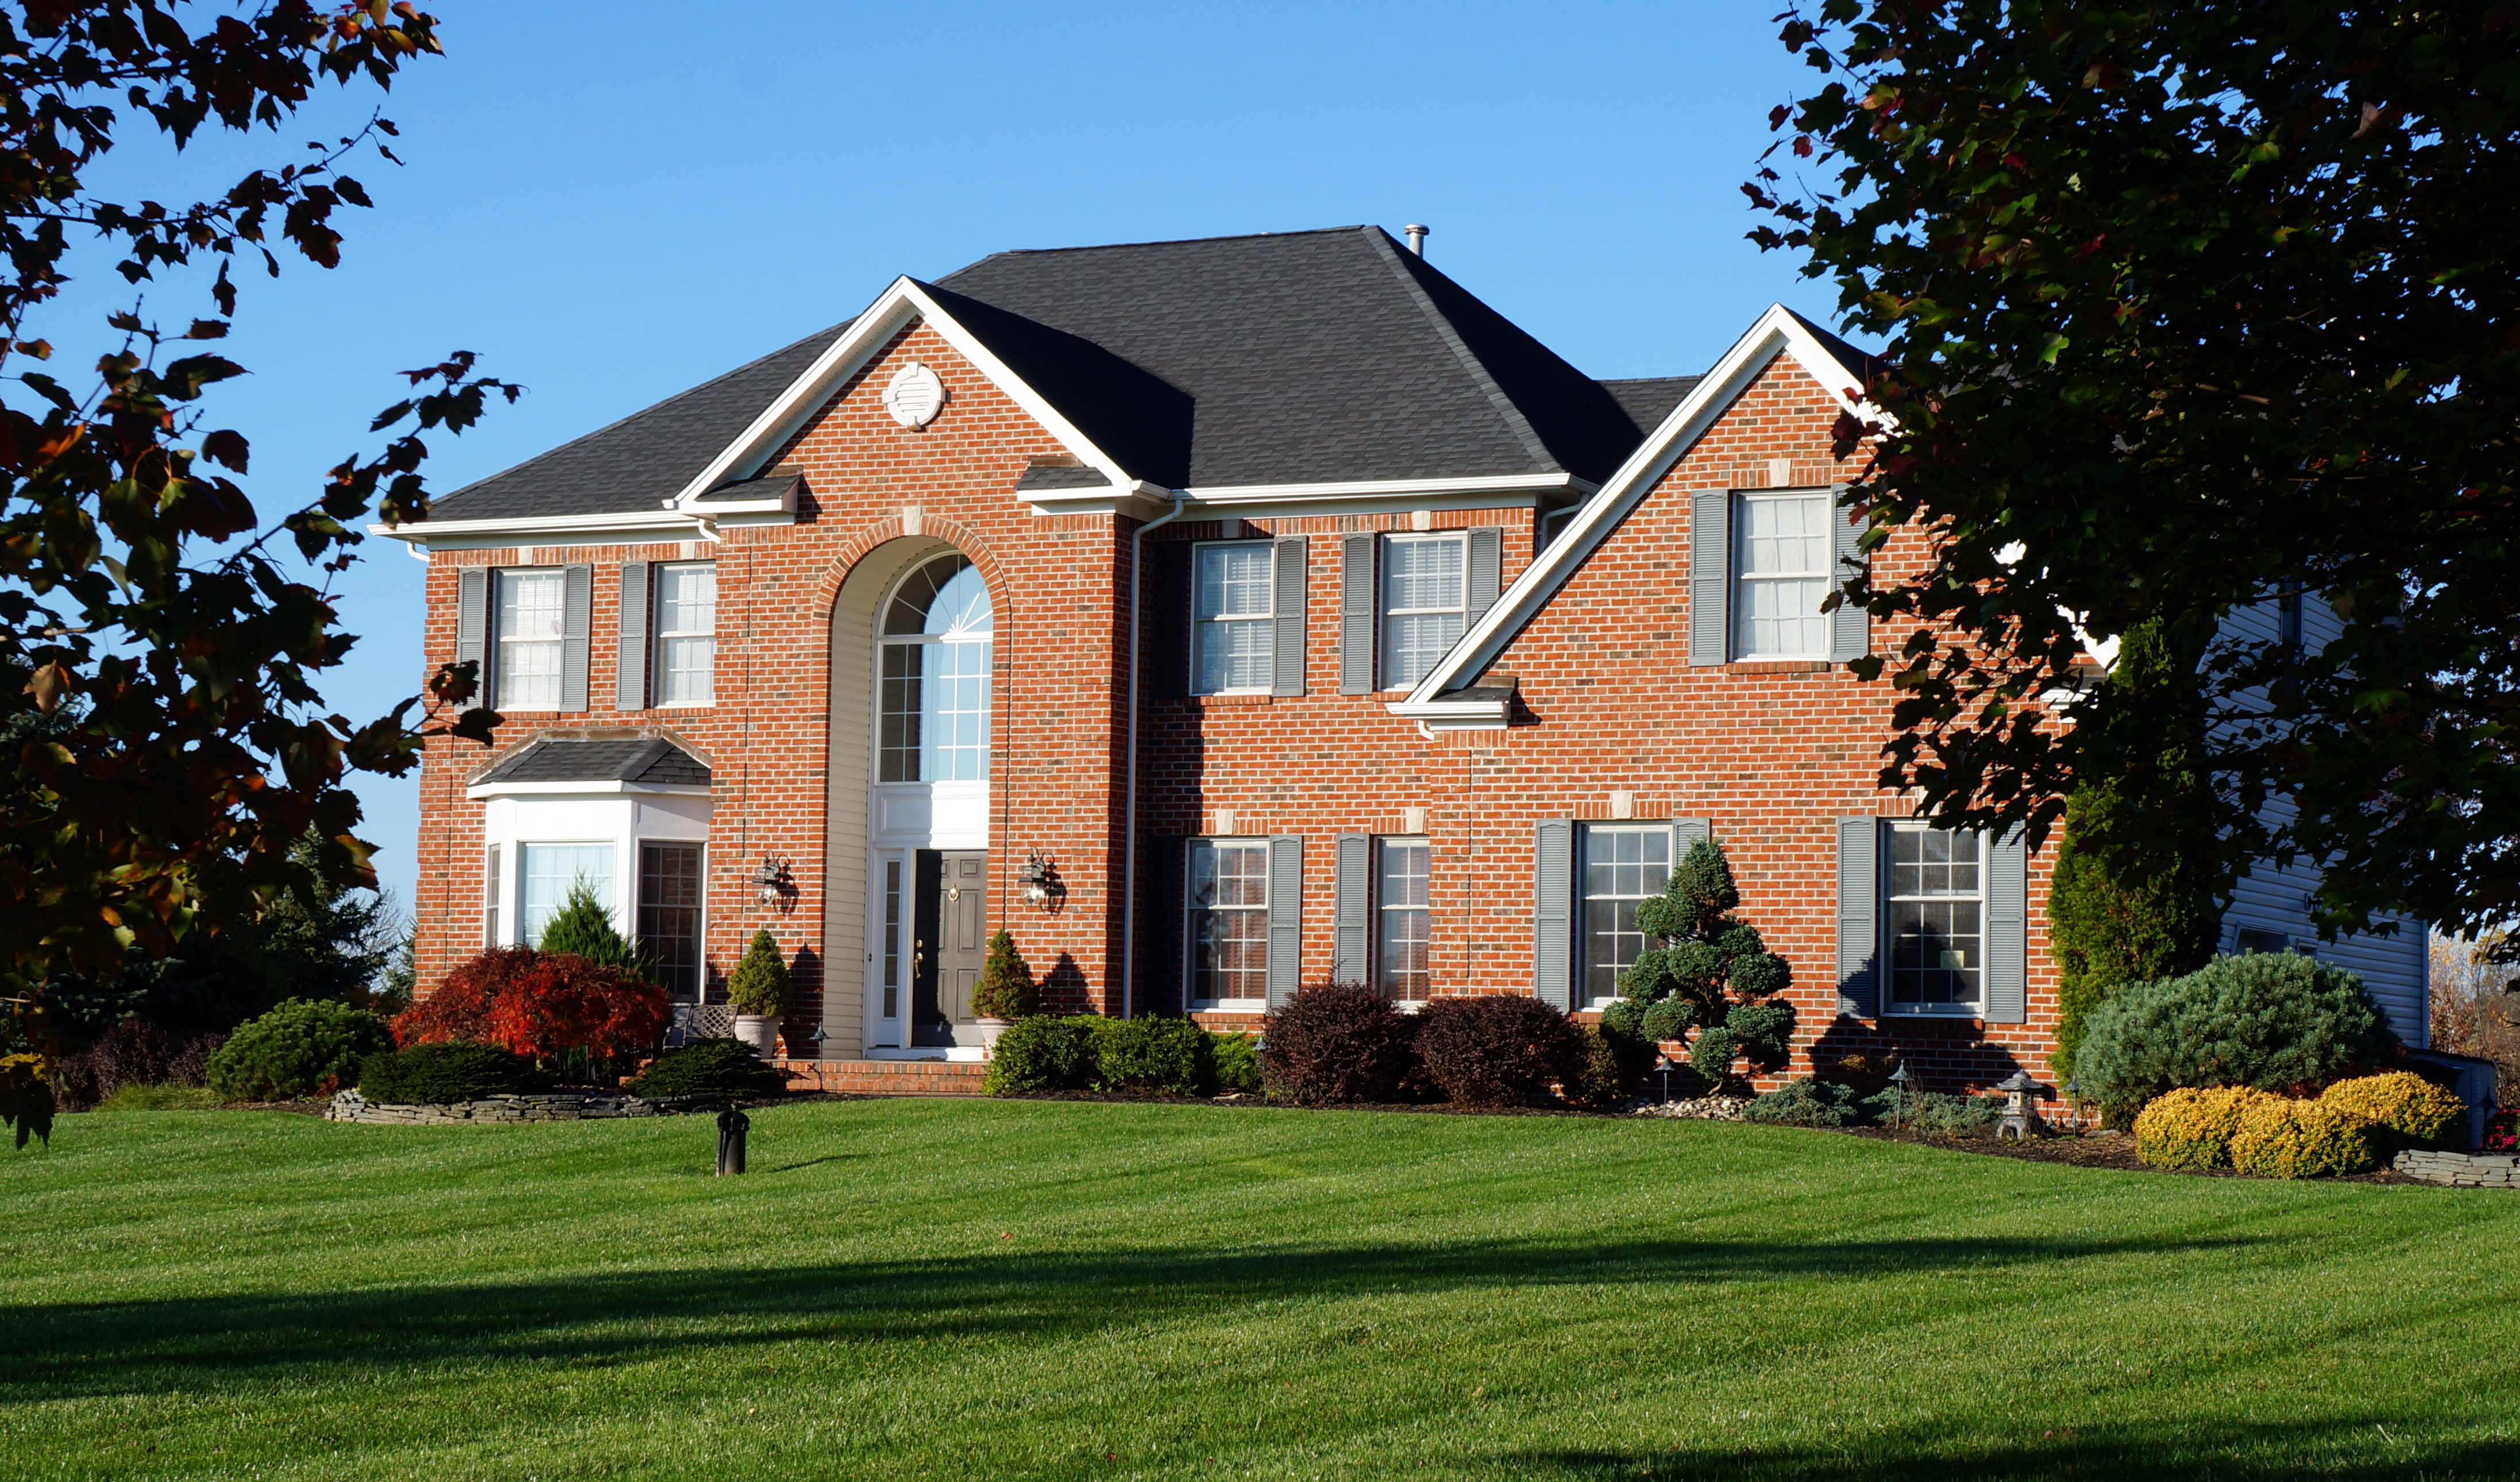 Anne arundel county property tax credit for public safety for Colonial brick